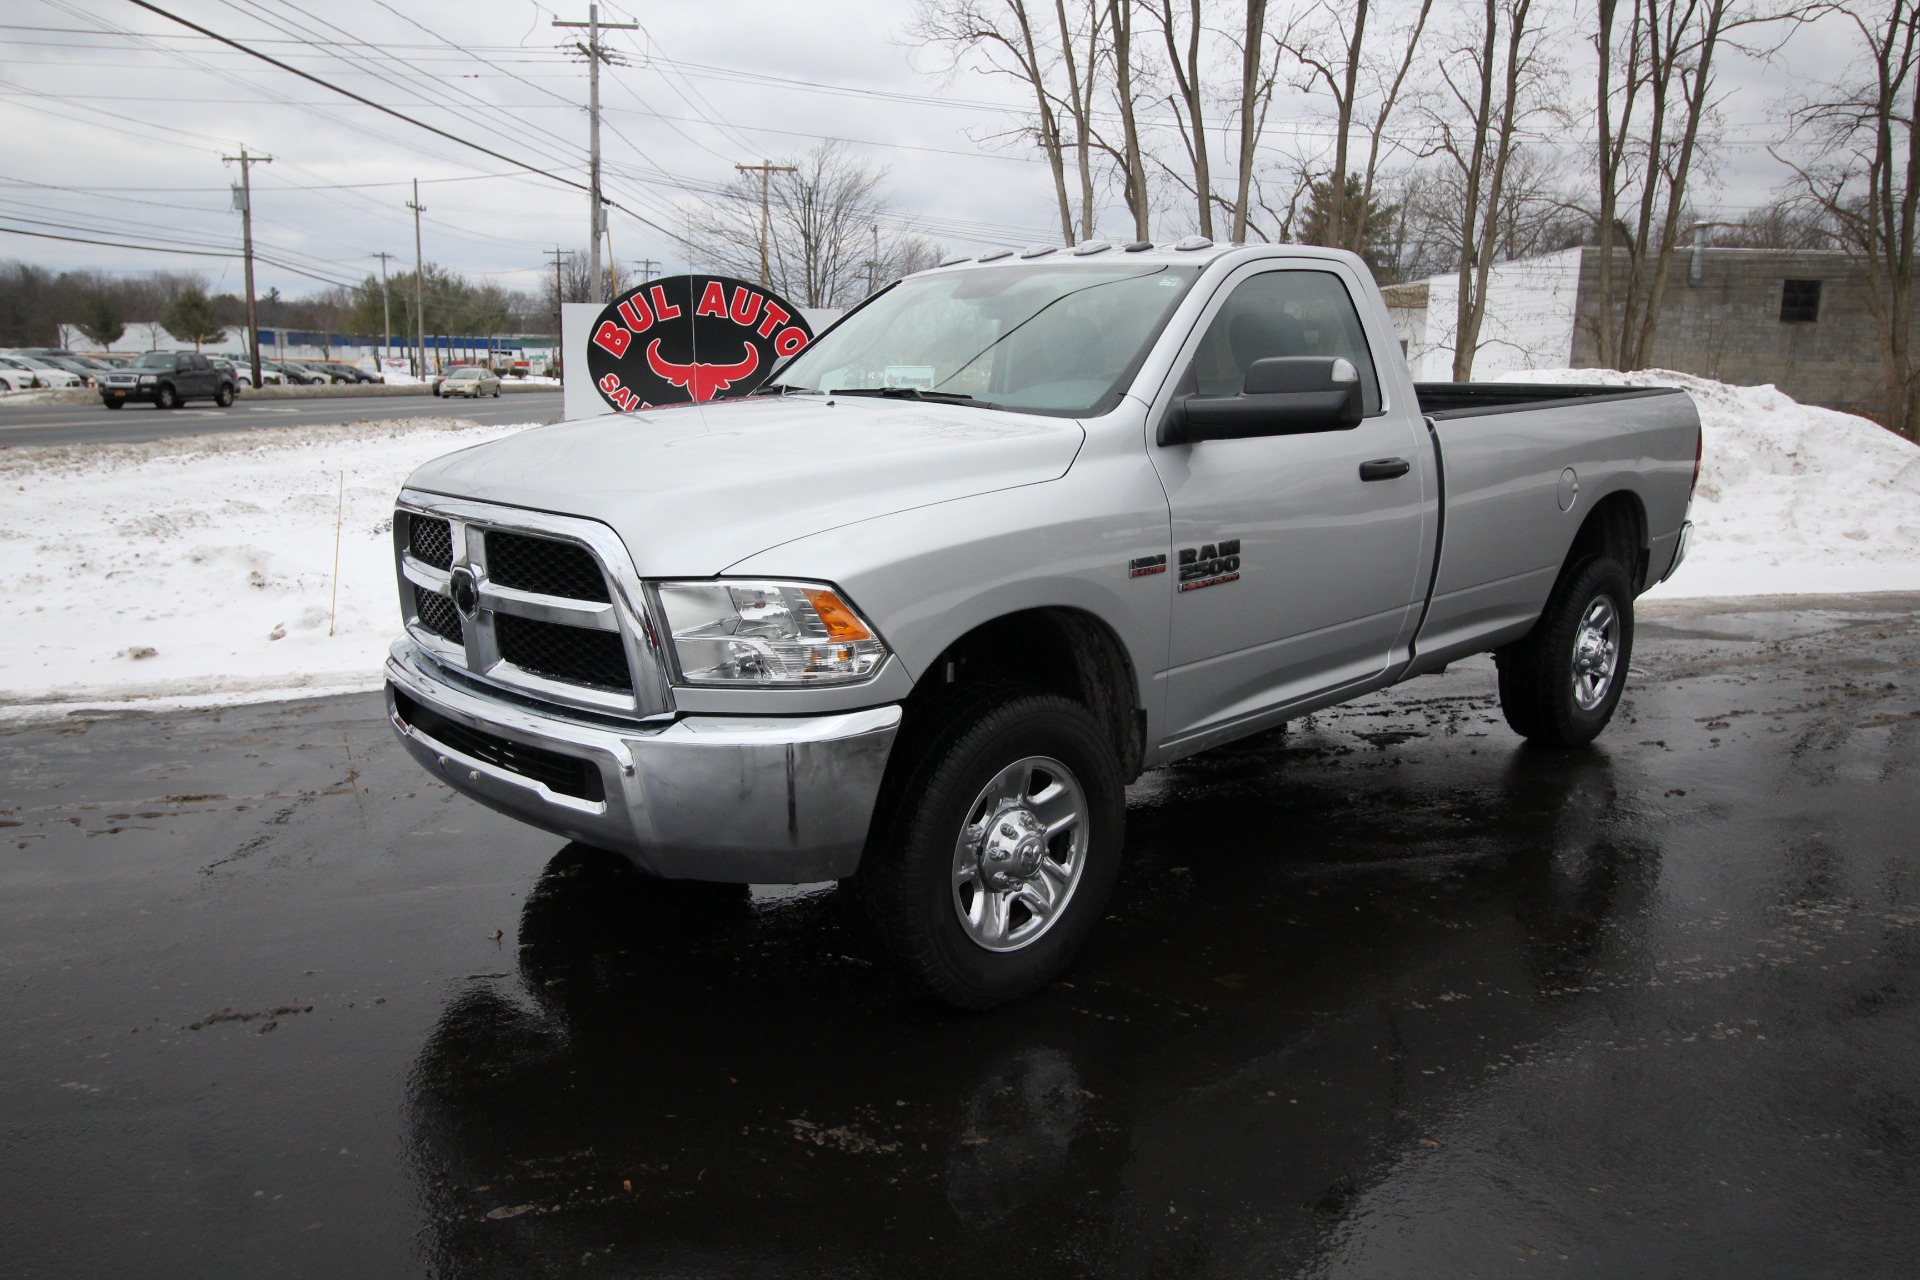 2016 ram 2500 tradesman regular cab 4wd stock 17242 for sale near albany ny ny ram dealer. Black Bedroom Furniture Sets. Home Design Ideas